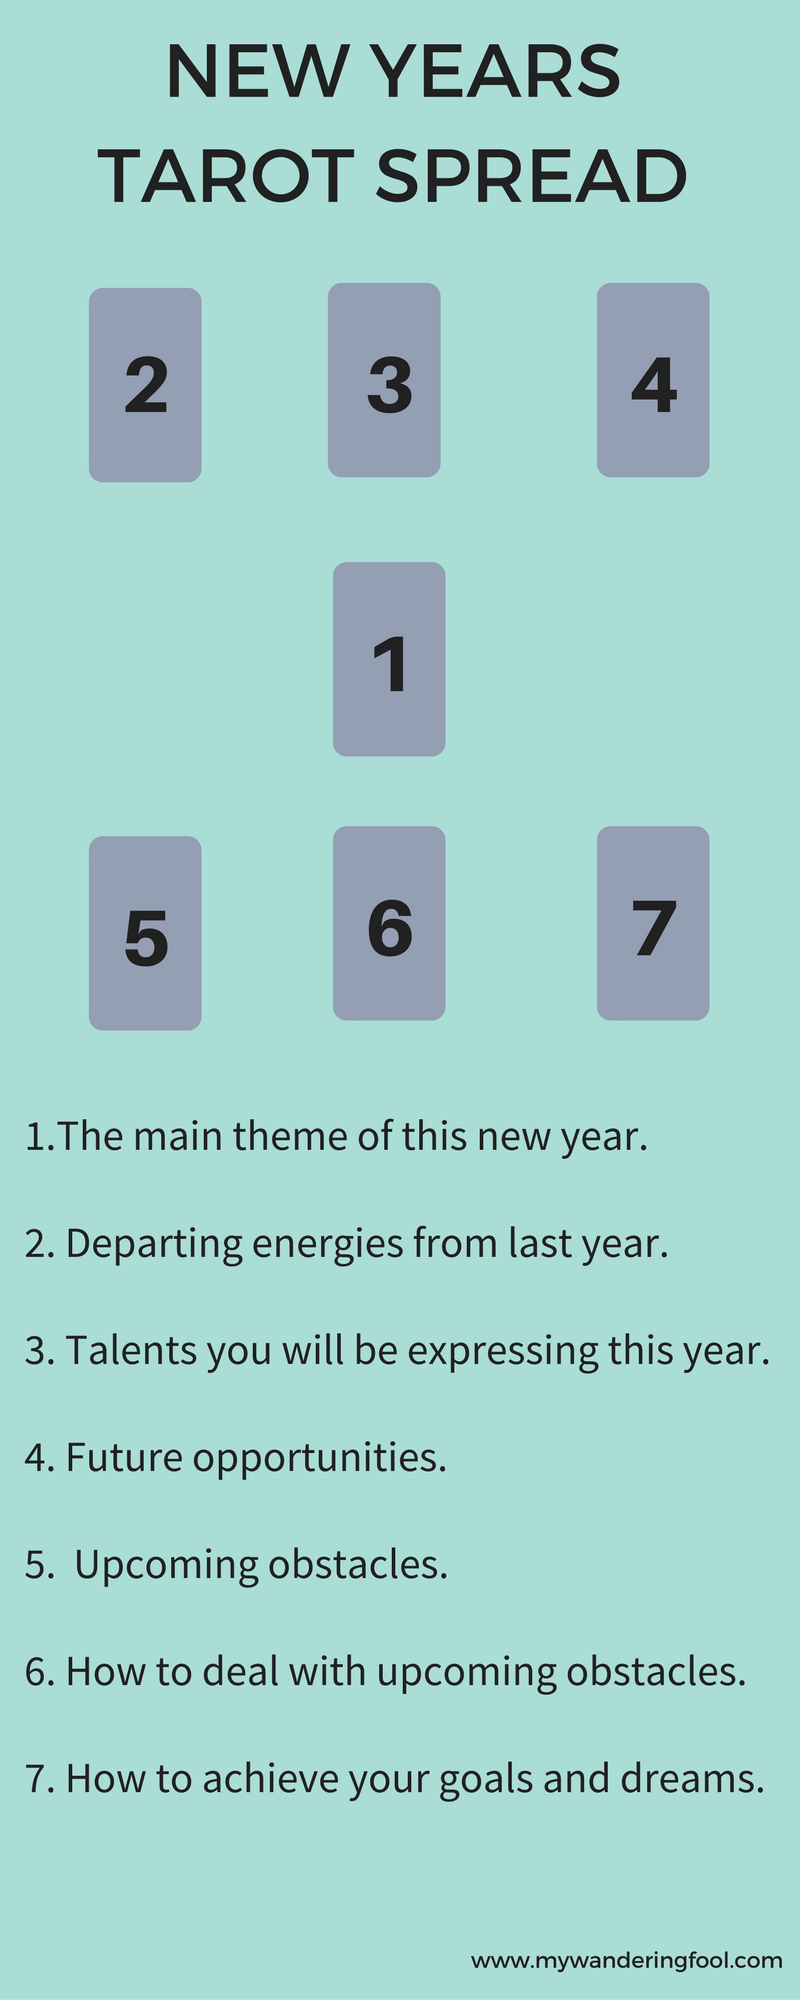 New Years Tarot Spread Use this spread to plan and see